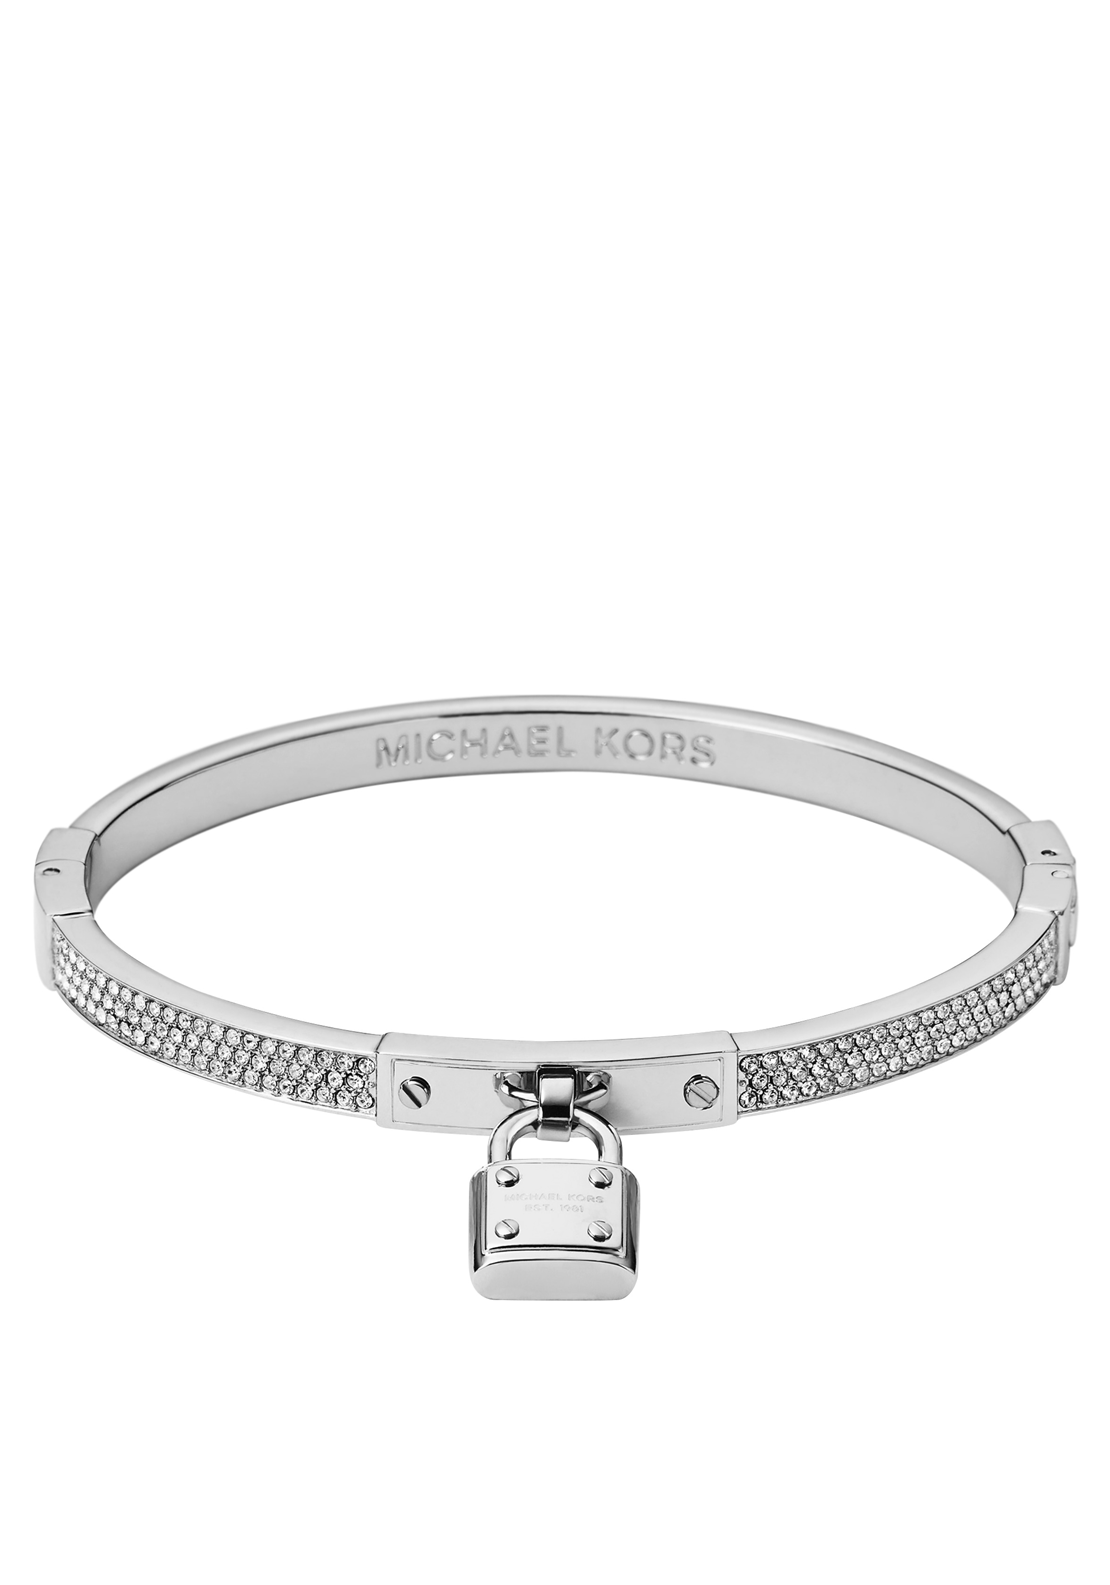 Michael Kors Womens Crystal Padlock Charm Bangle, Silver